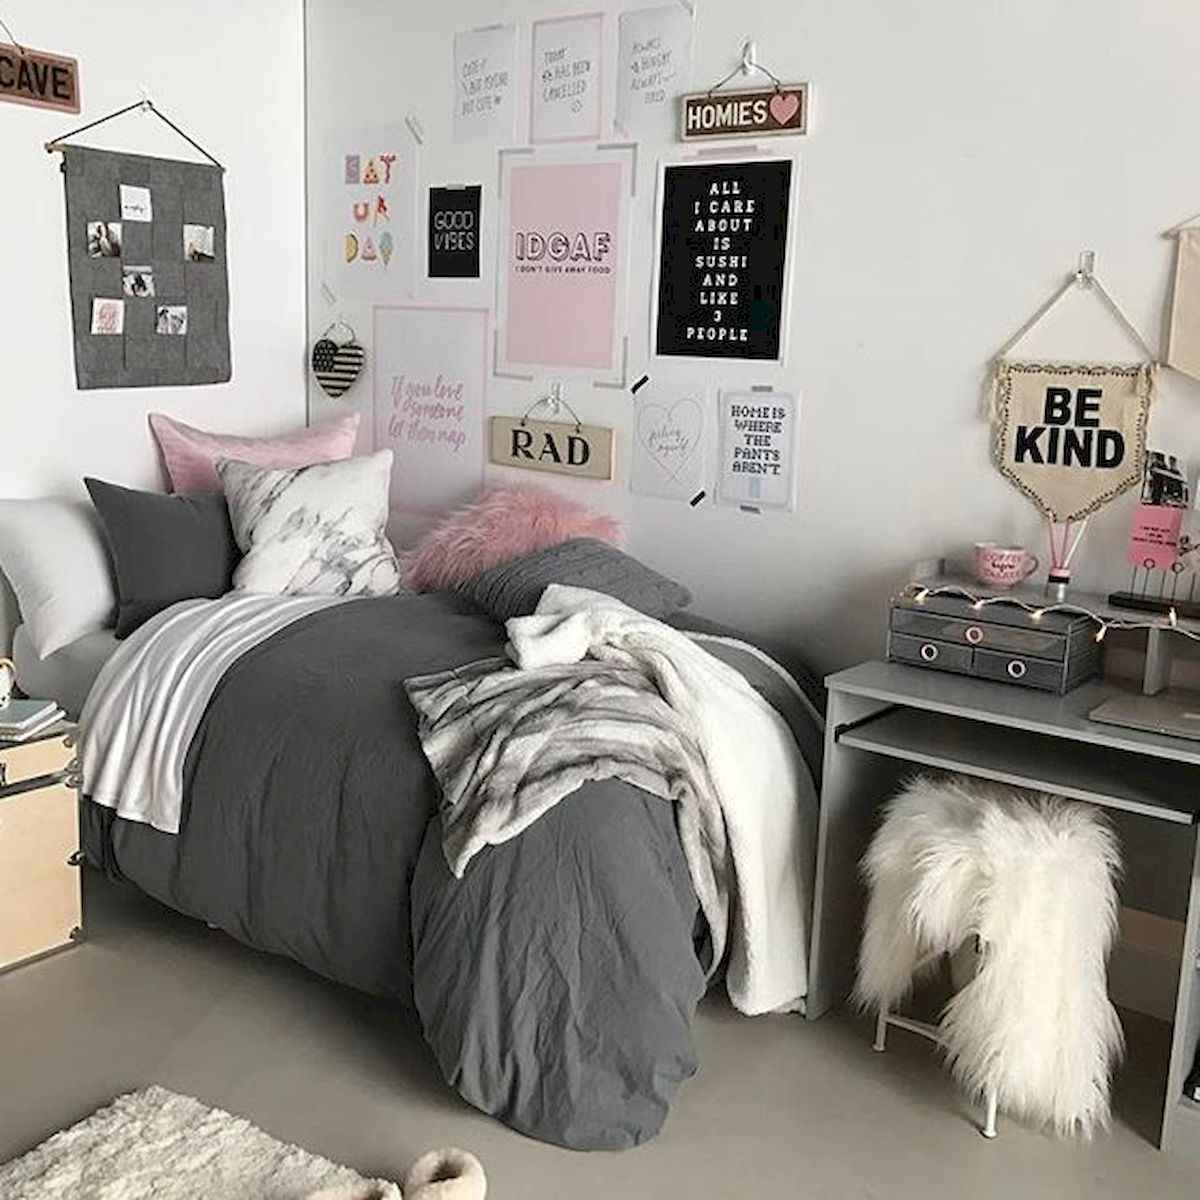 60 Gorgeous College Dorm Room Decorating Ideas And Makeover (29)